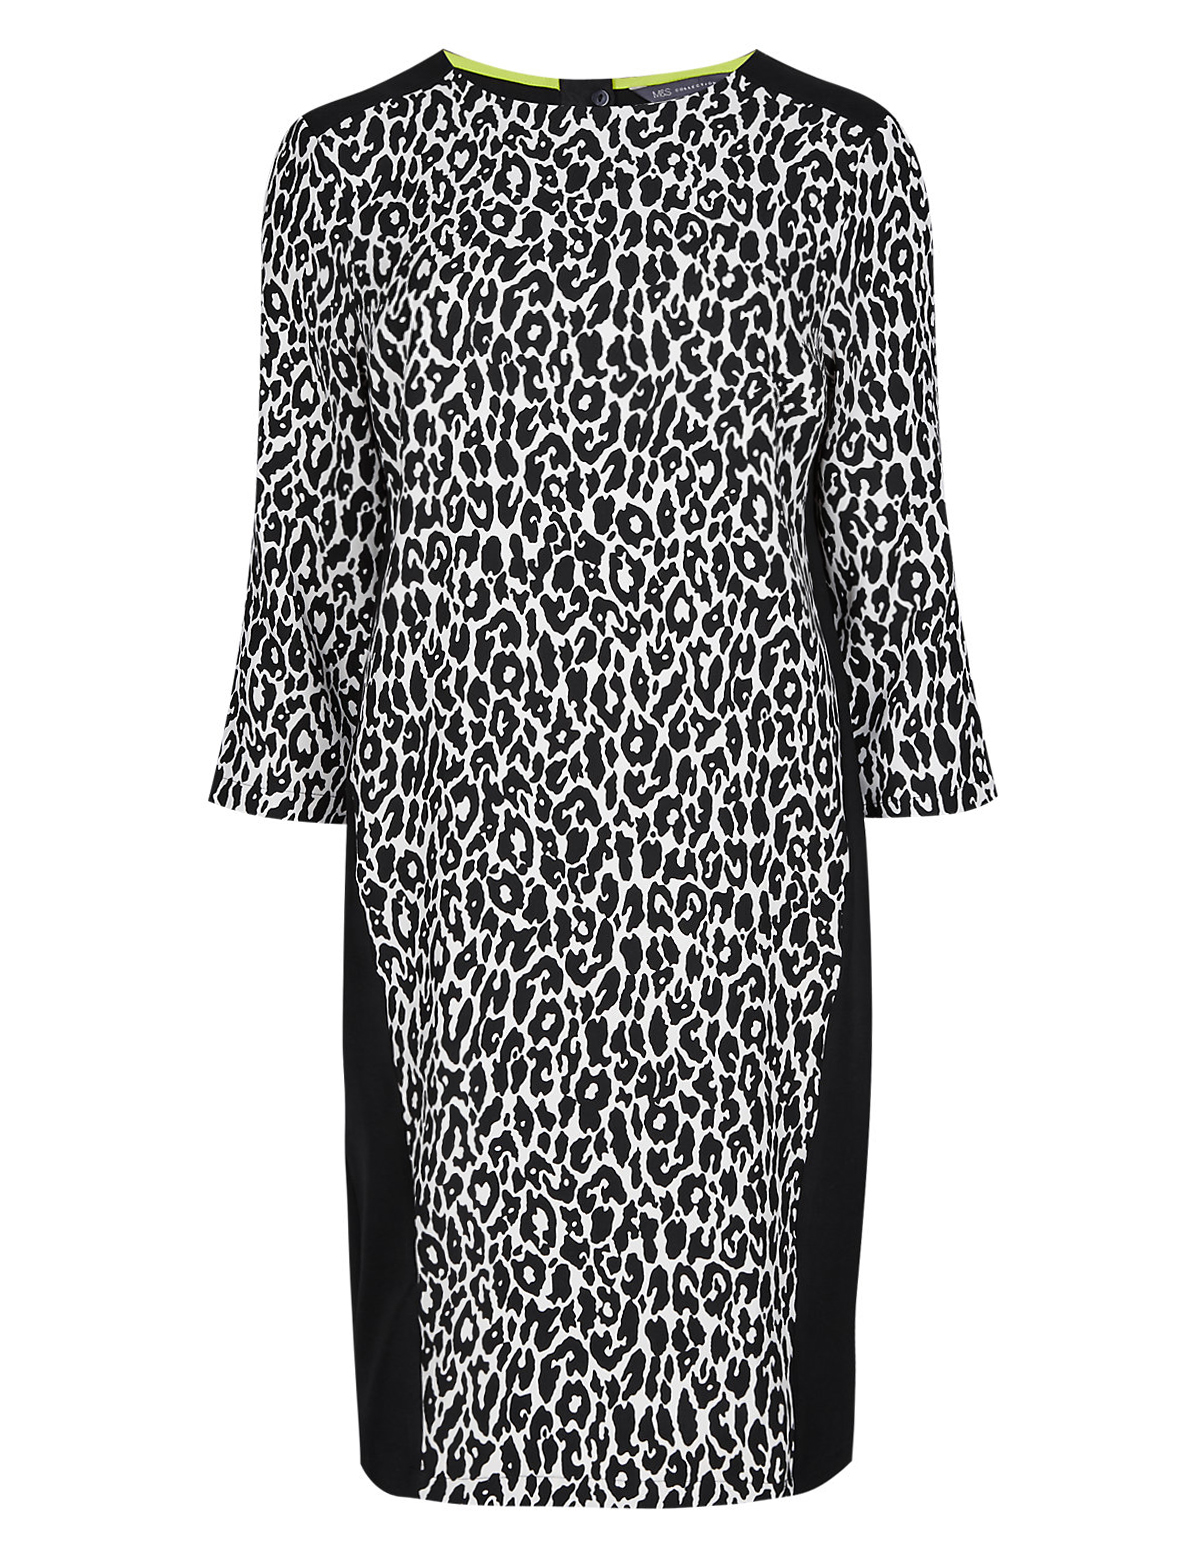 b48ca1a9d27c Marks and Spencer - - M&5 BLACKMIX Leopard Print Insert Panelled Tunic  Dress - Plus Size 12 to 22